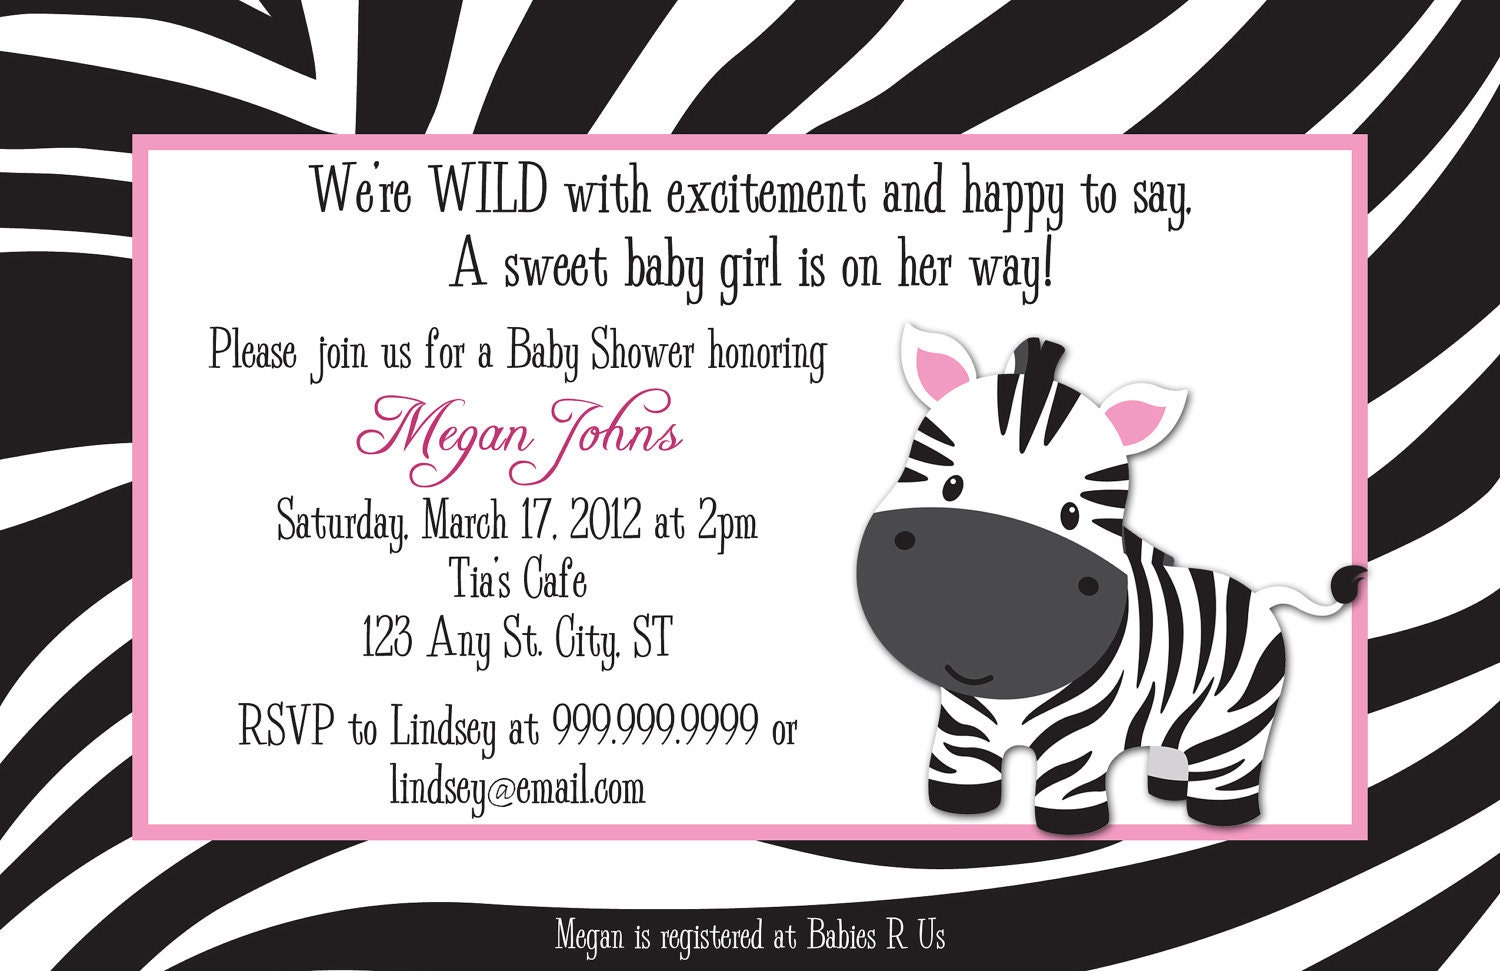 Electronic Baby Shower Invitations Templates was amazing invitation example